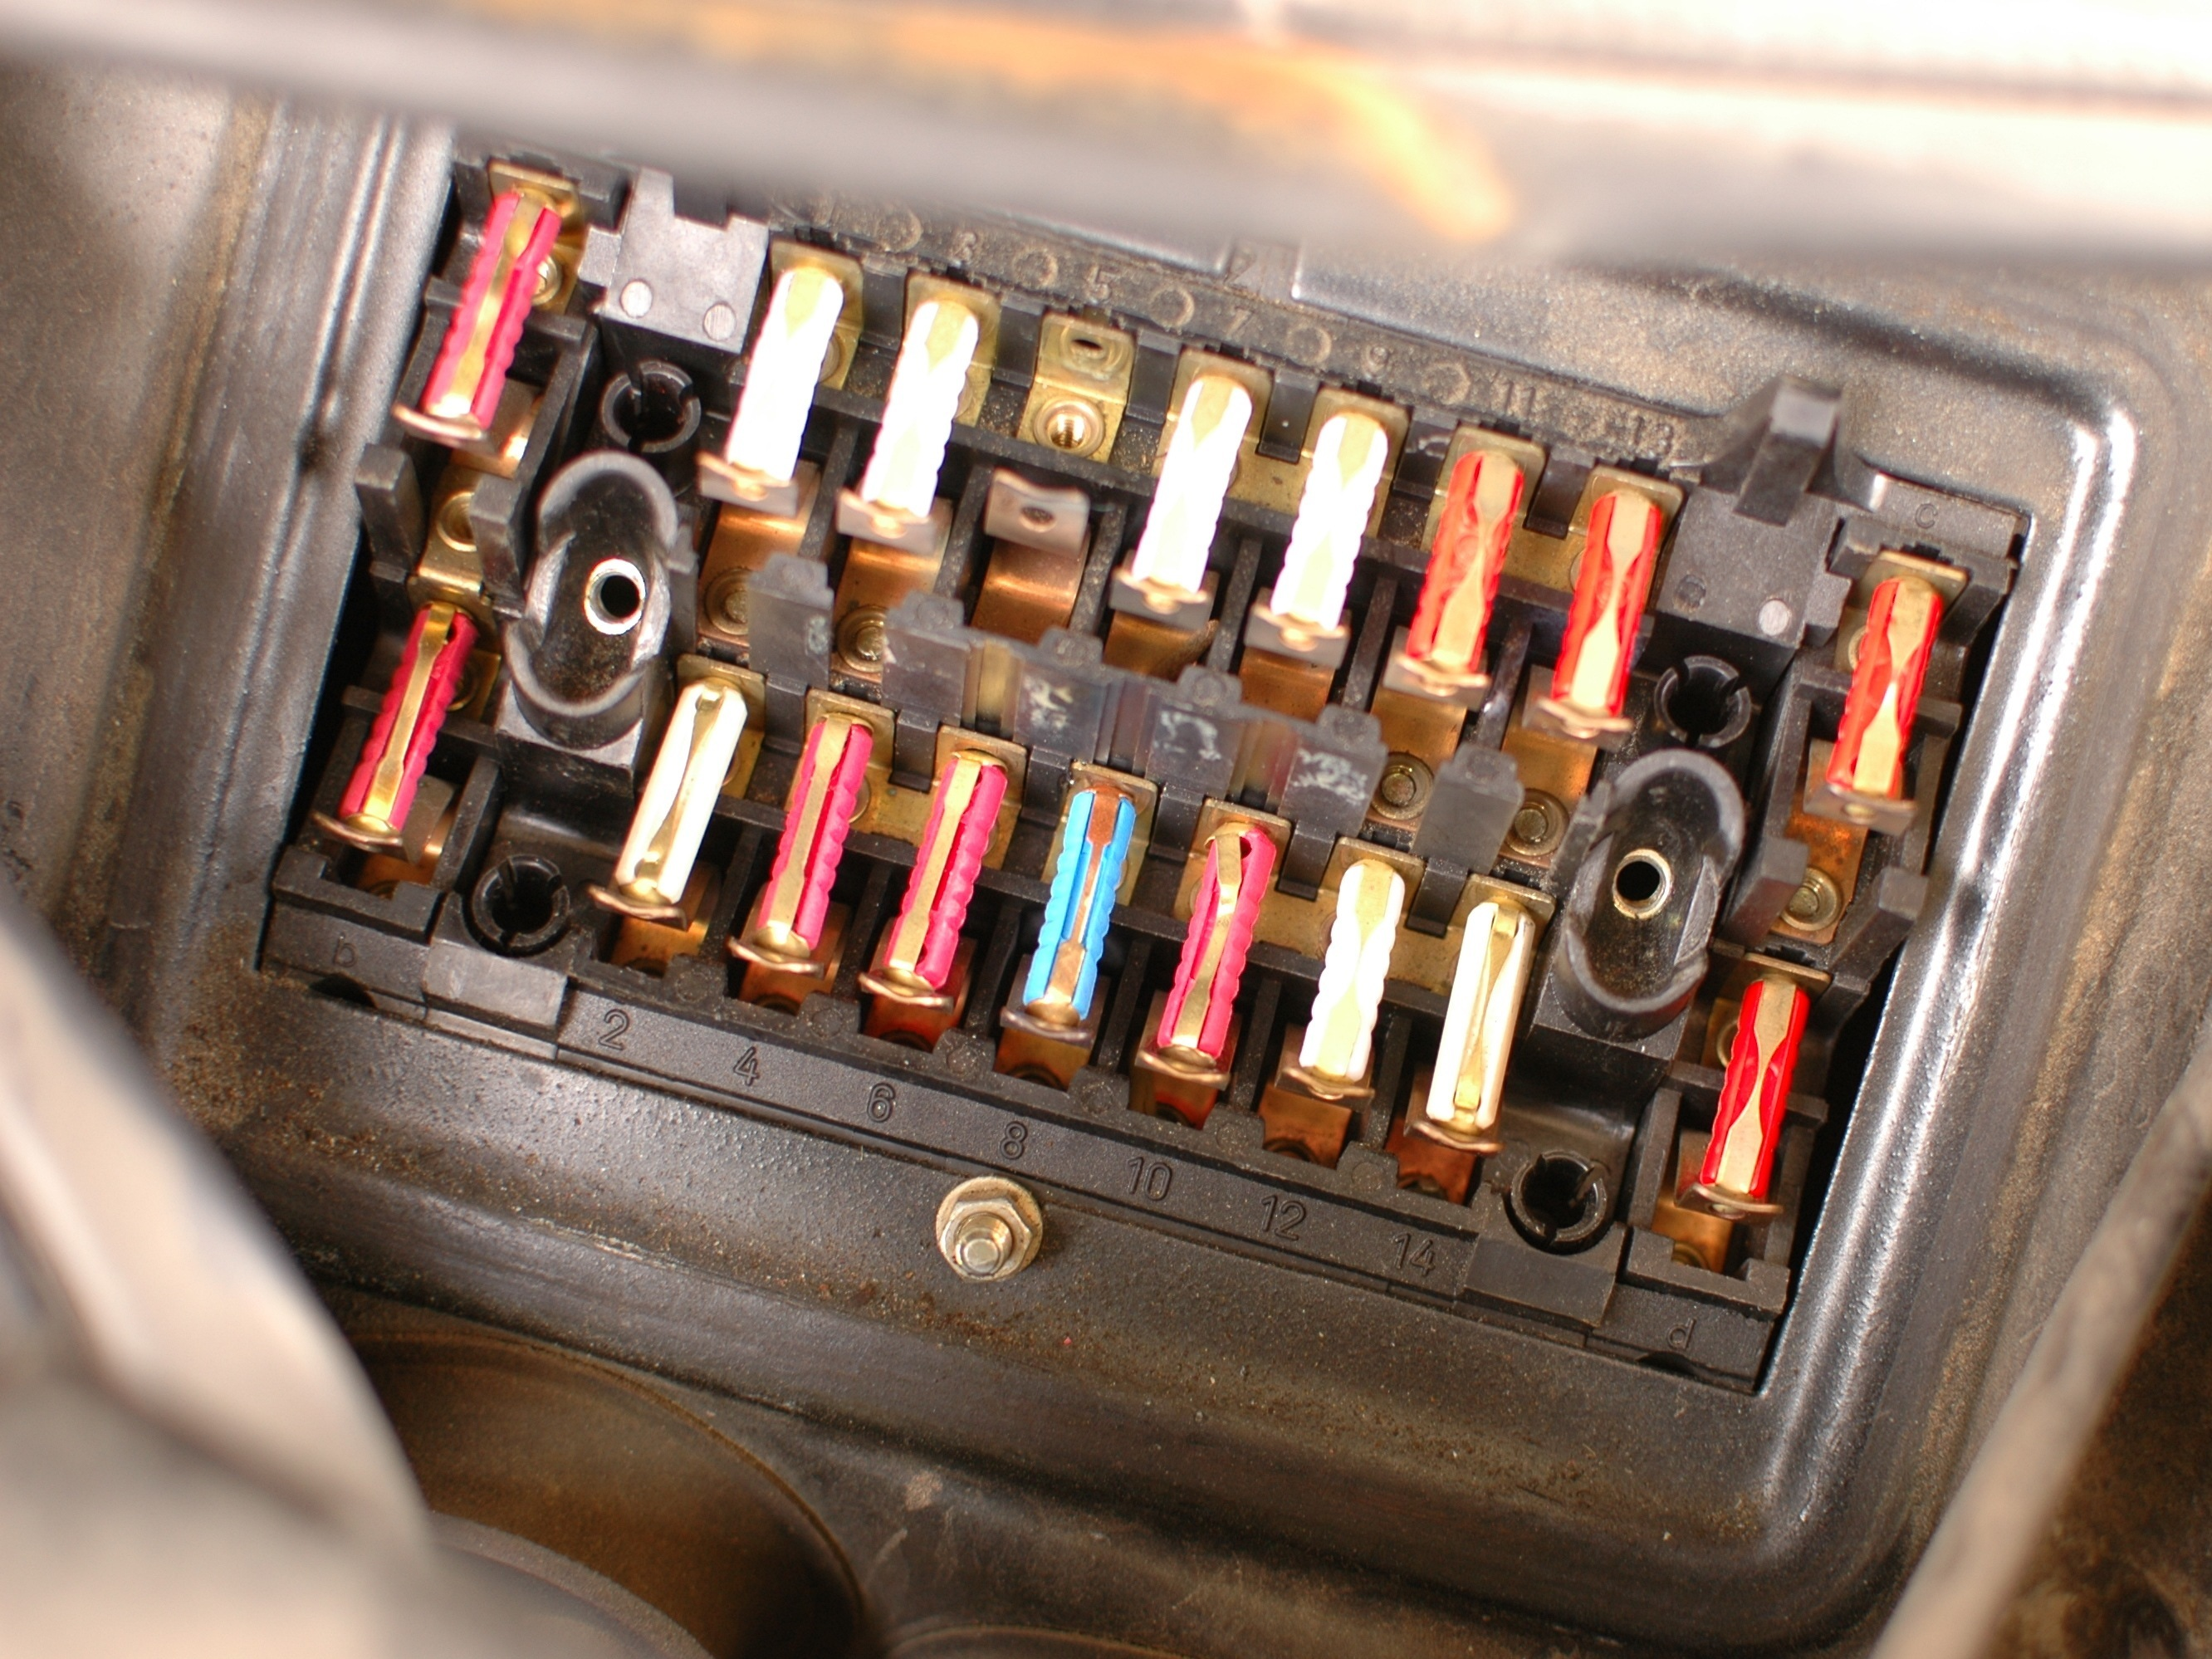 AfYAfmoCaMTVU2ap how to check mercedes w123 fuses ifixit 1984 mercedes 380sl fuse box location at edmiracle.co